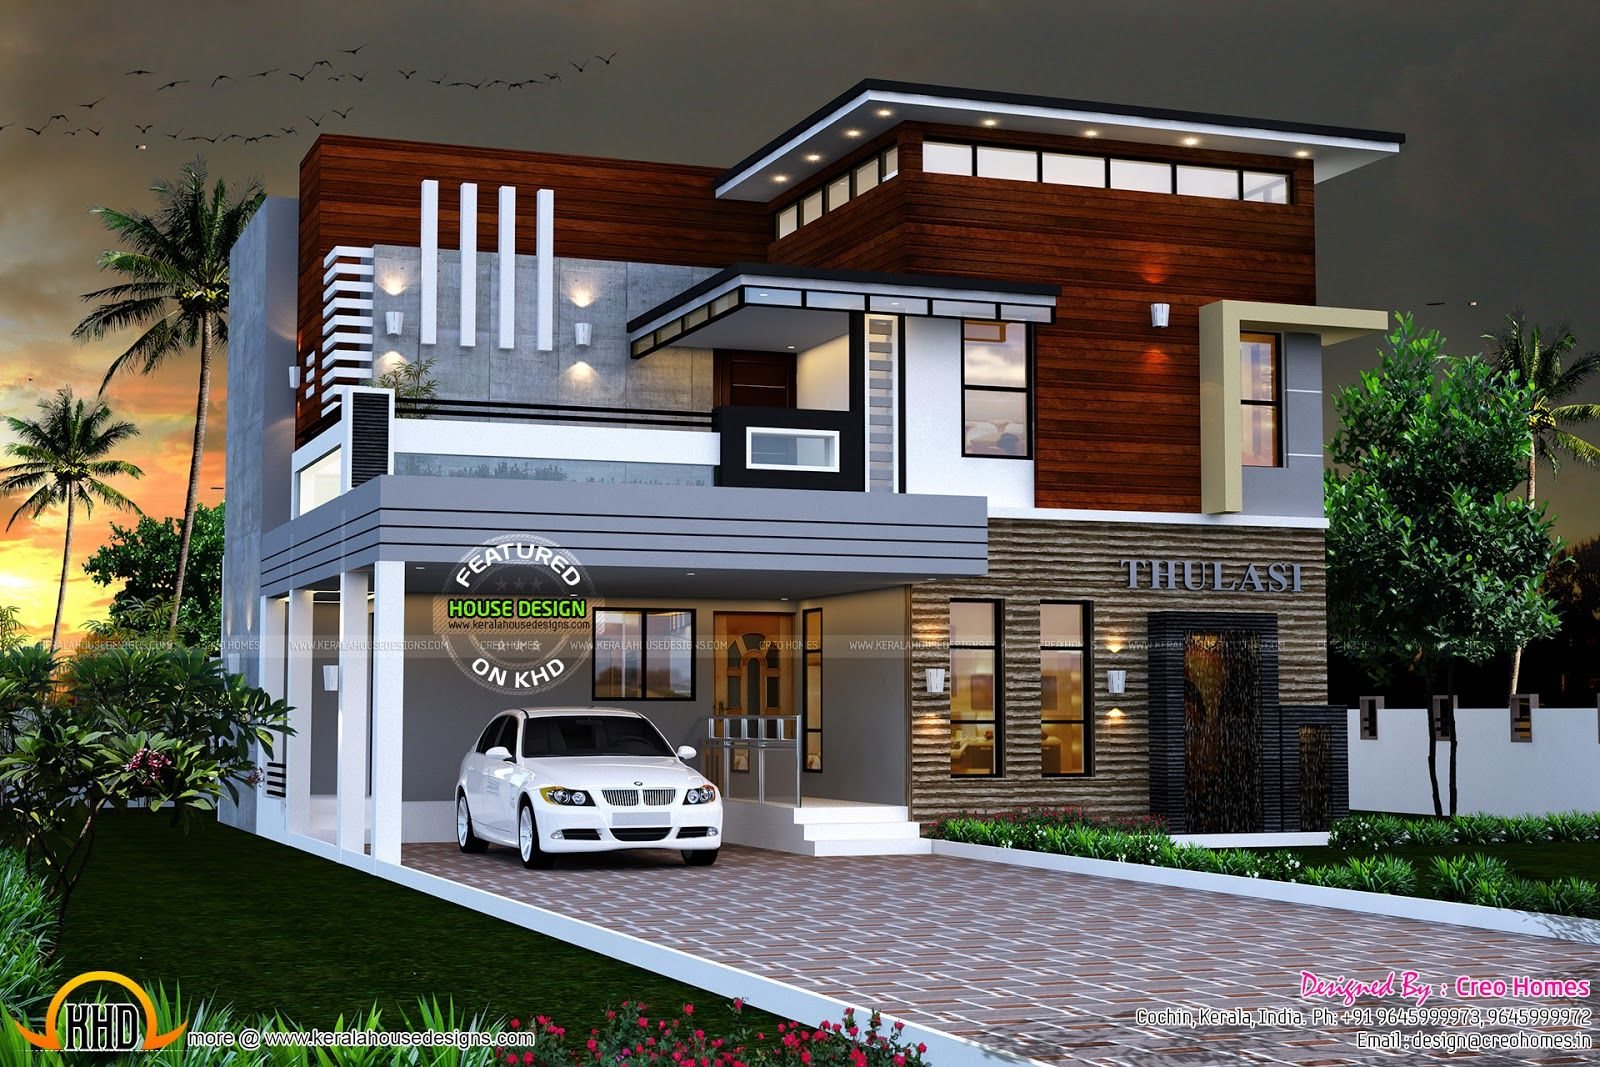 Eterior design modern small house architecture building for Model house design with floor plan